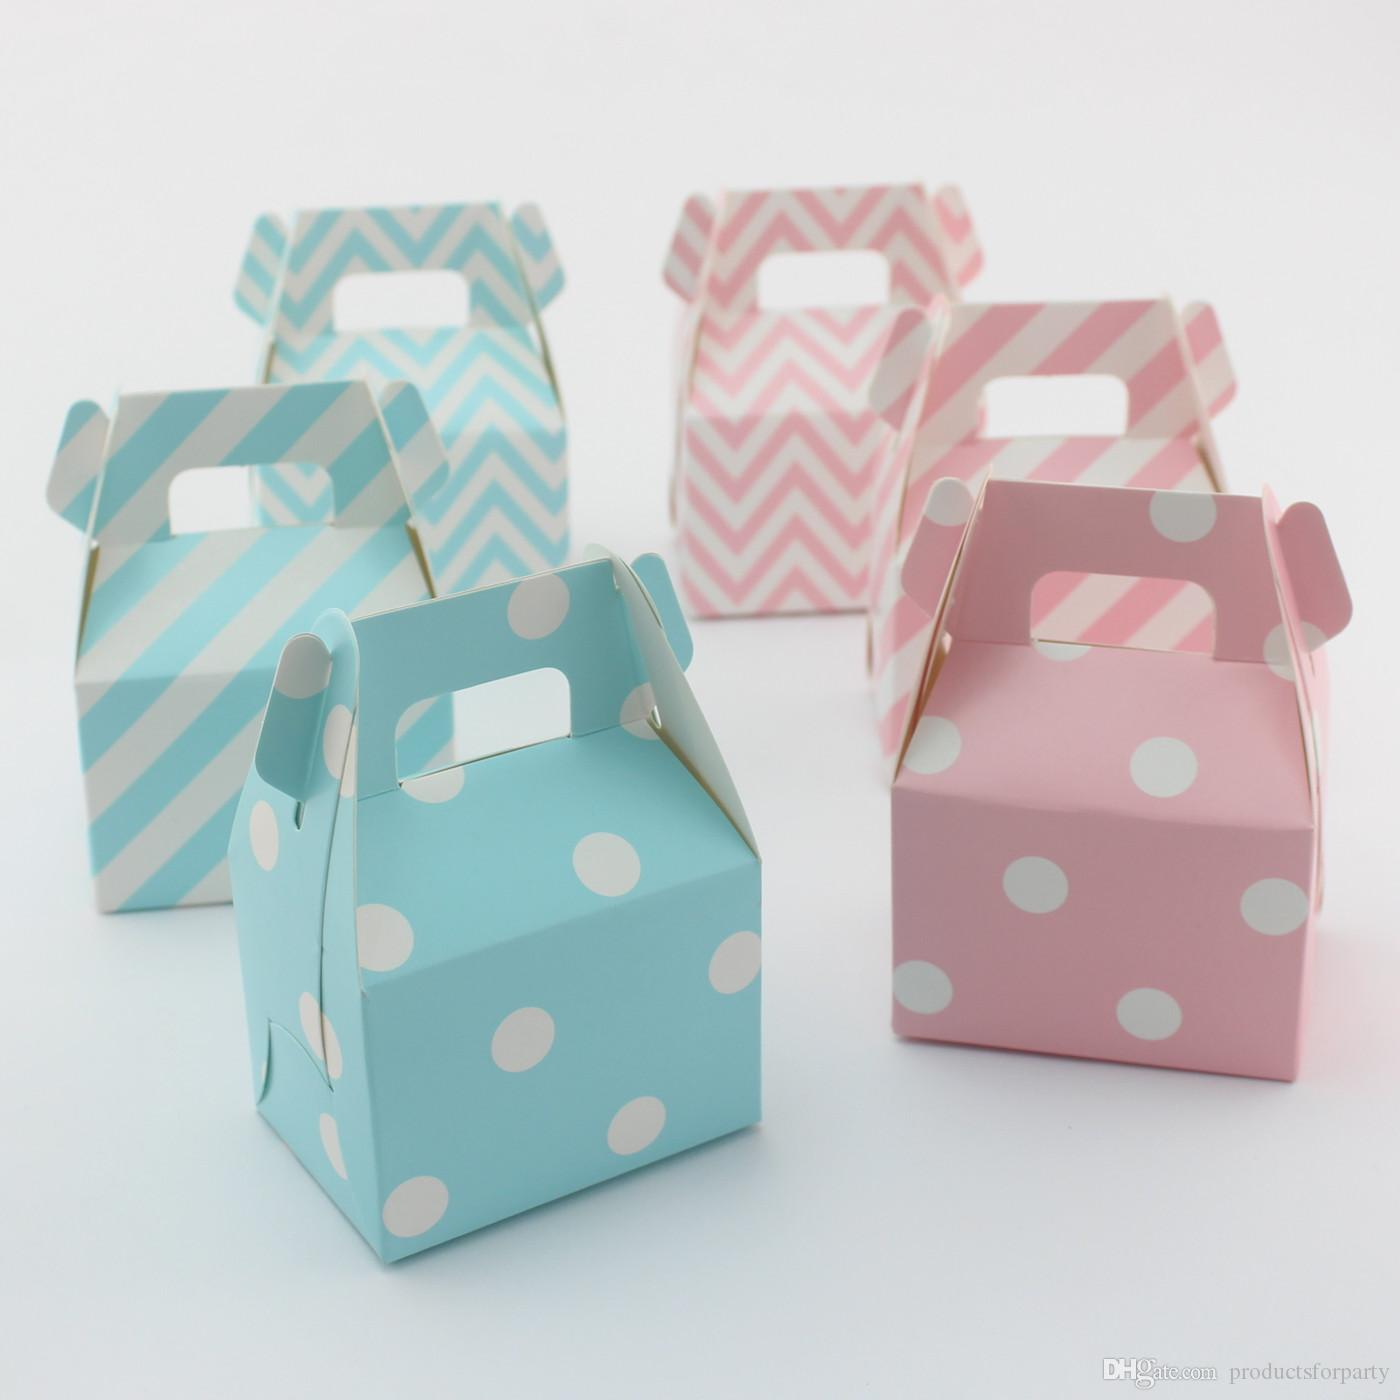 540pcs baby party supplies chevron gable paper boxes wedding favor 540pcs baby party supplies chevron gable paper boxes wedding favor candy packaged lovely handmade diy gift boxes 2018 from productsforparty negle Image collections